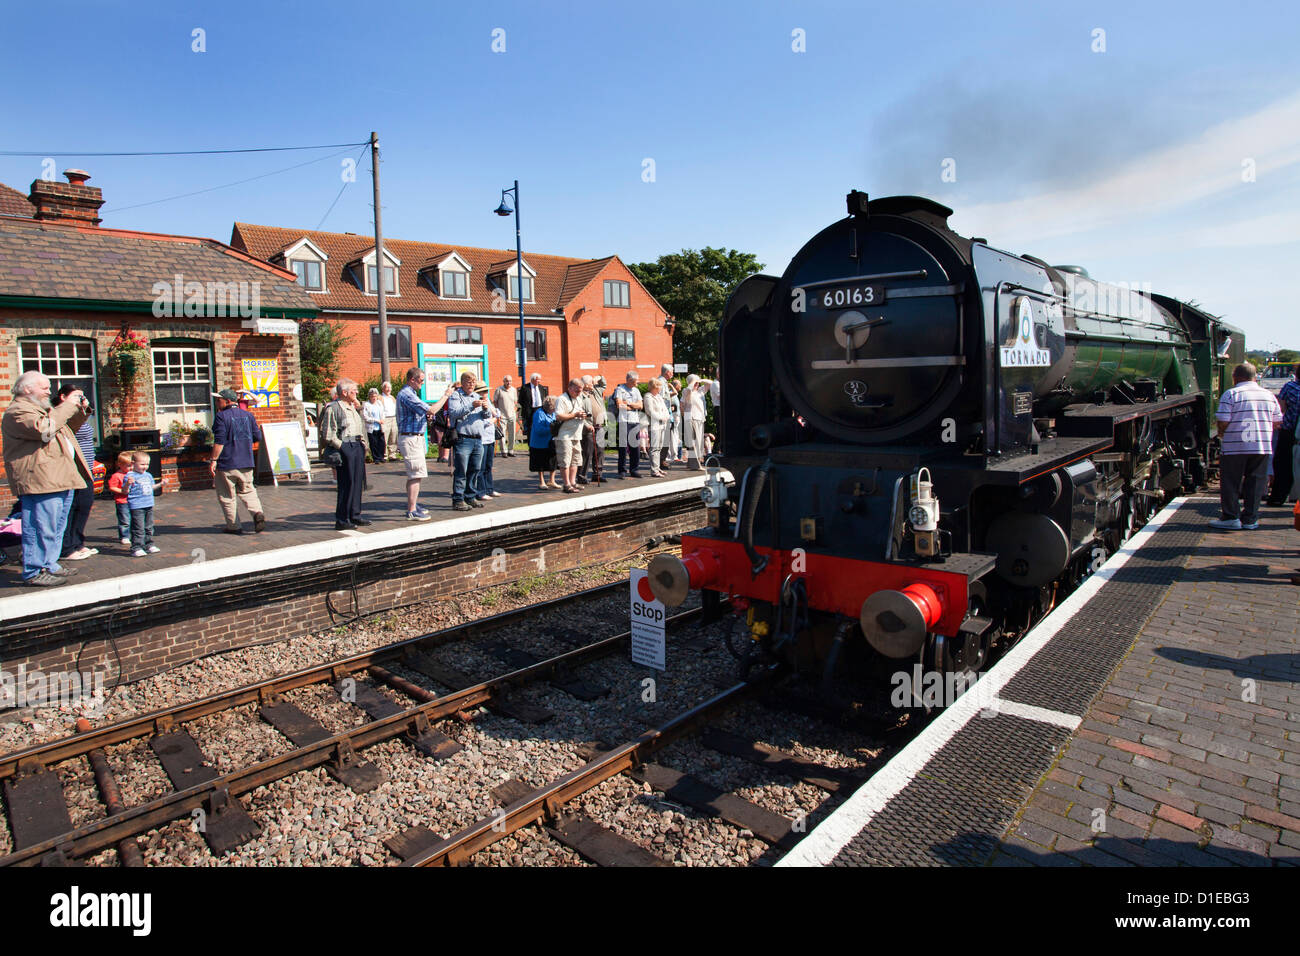 Pacfic Class Steam Locomotive Tornado visiting Sheringham on the Poppy Line, North Norfolk Railway, Norfolk, England - Stock Image